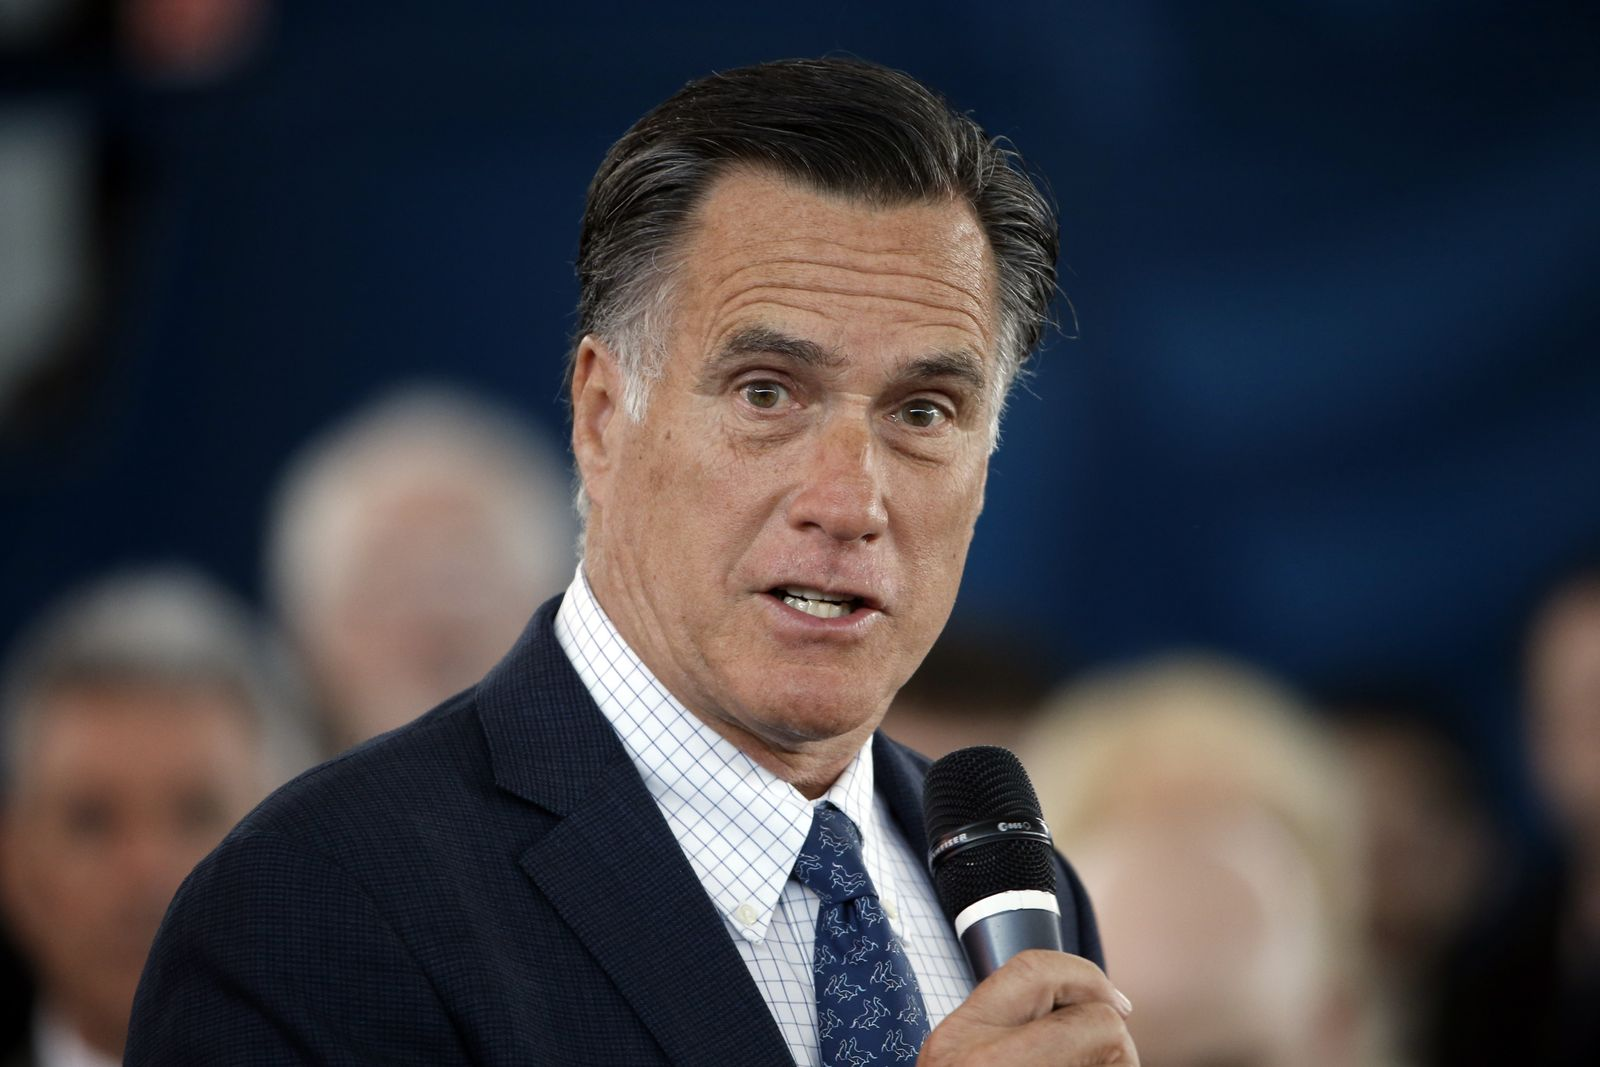 Republikaner / Romney